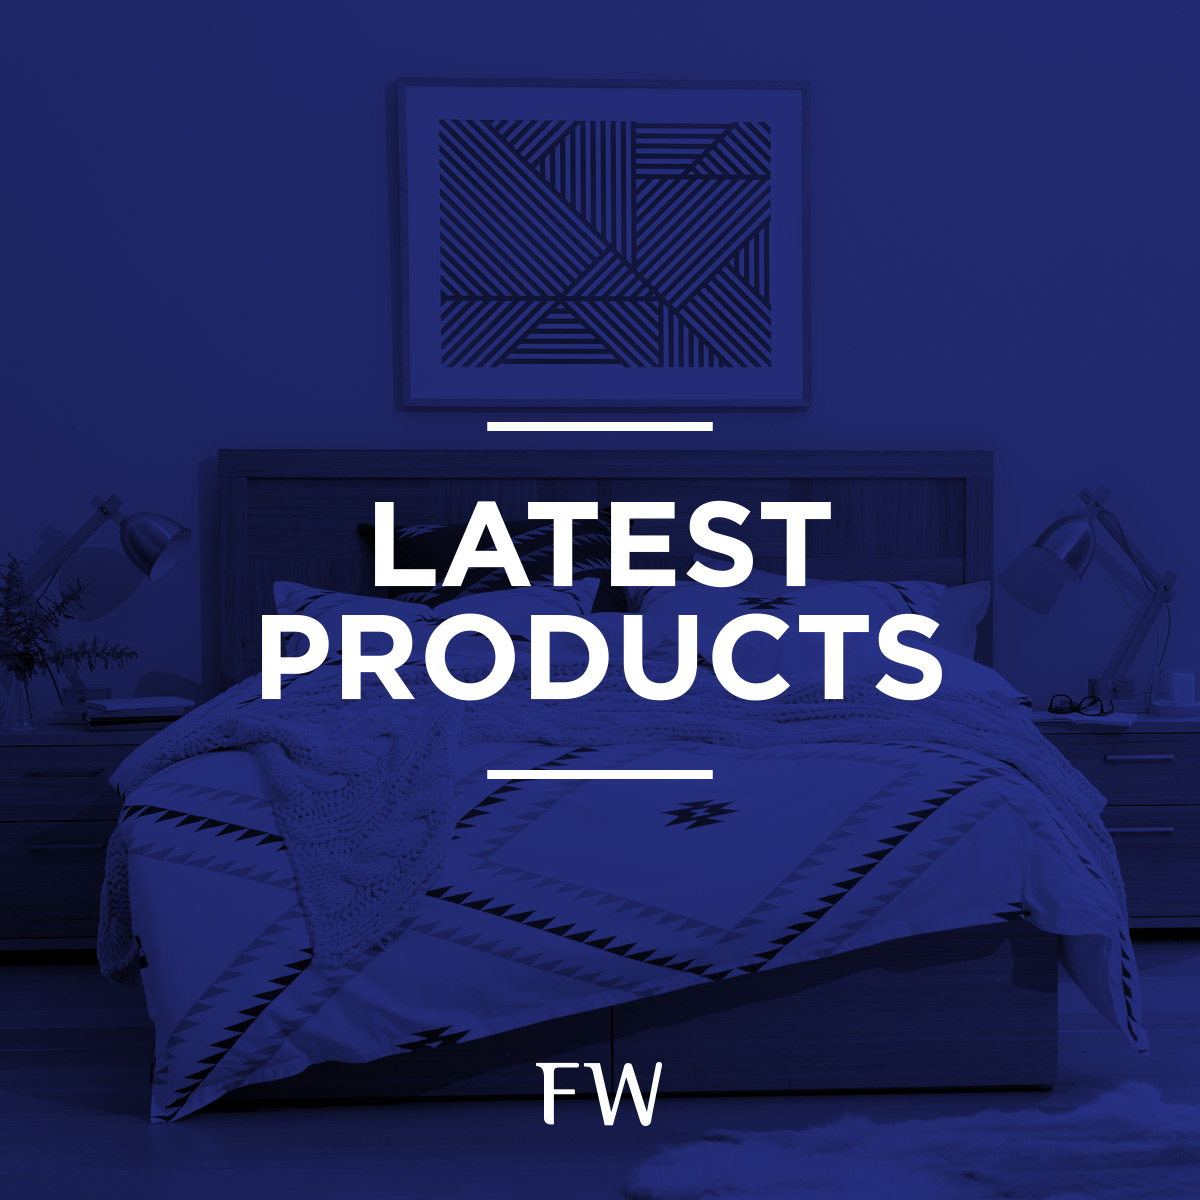 Beds, Mattresses, Bedding And Accessories